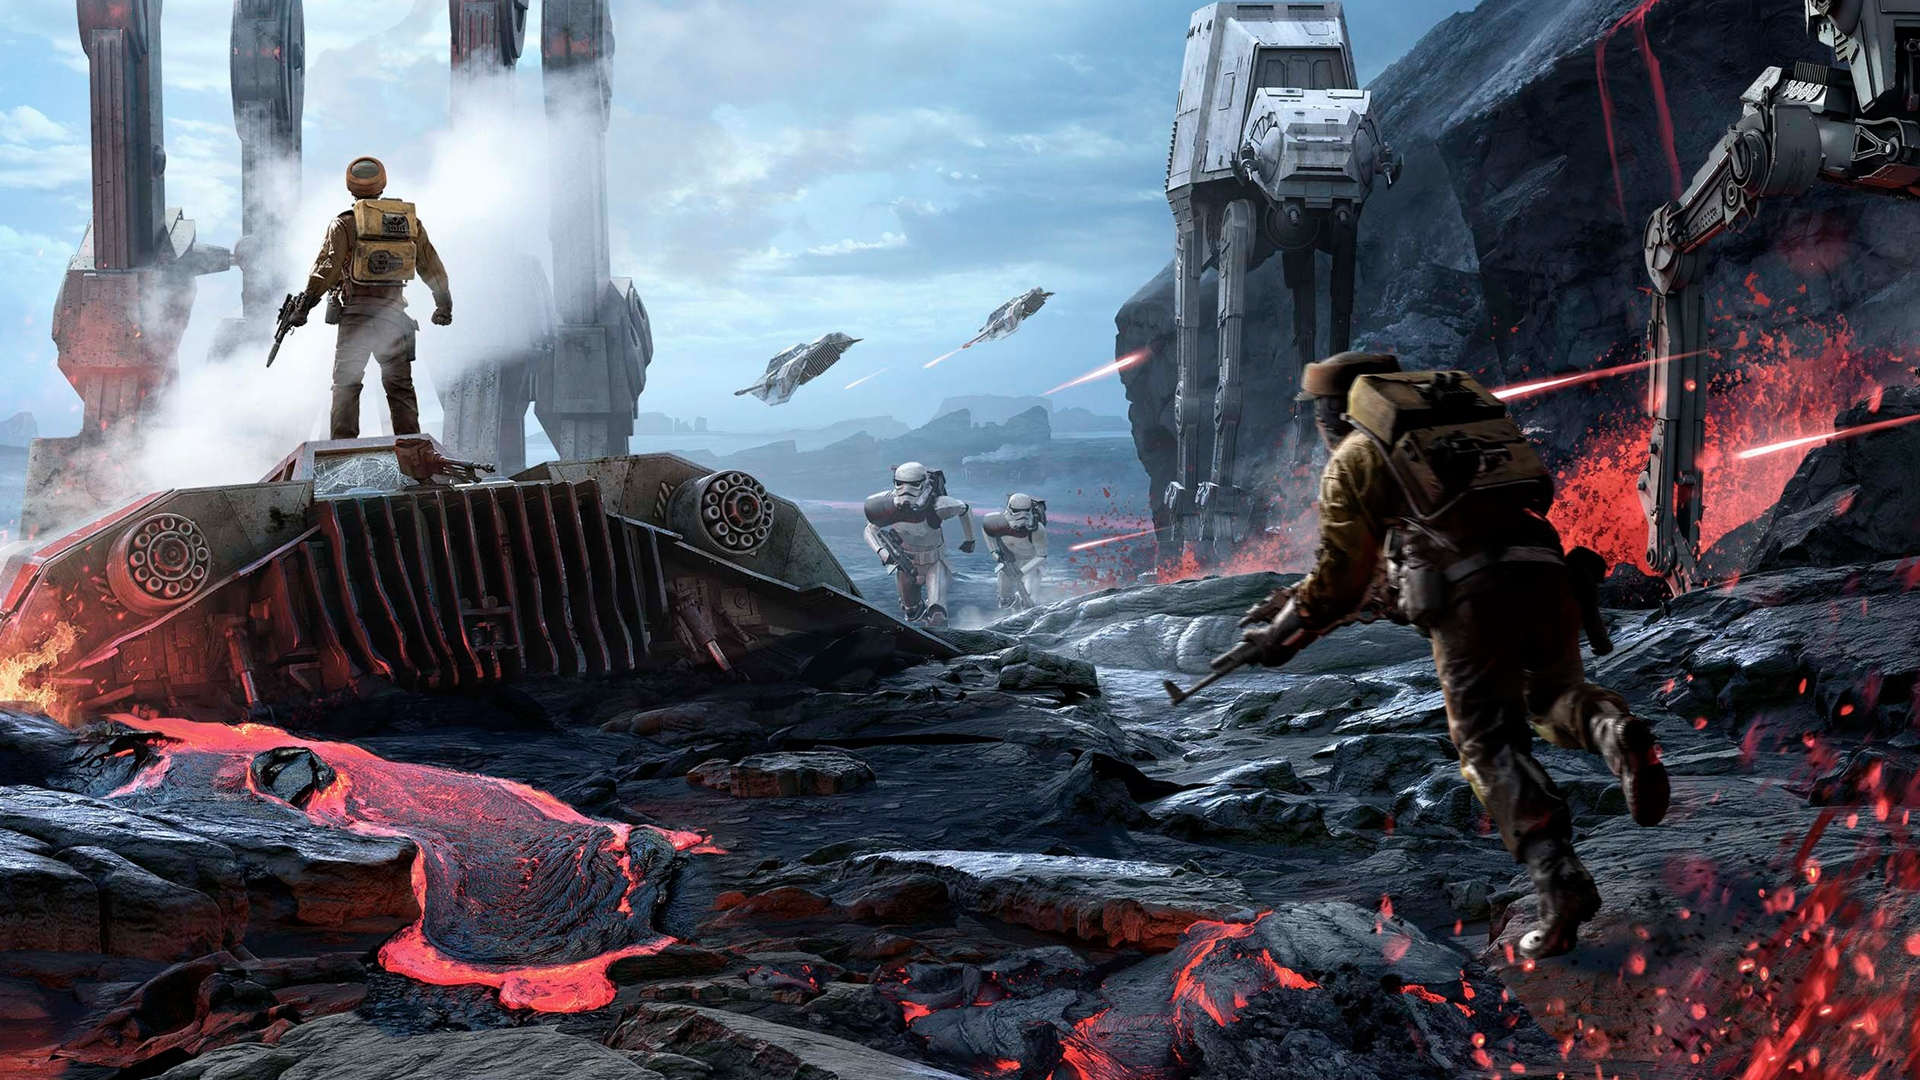 star wars battlefront (2015) wallpapers, pictures, images